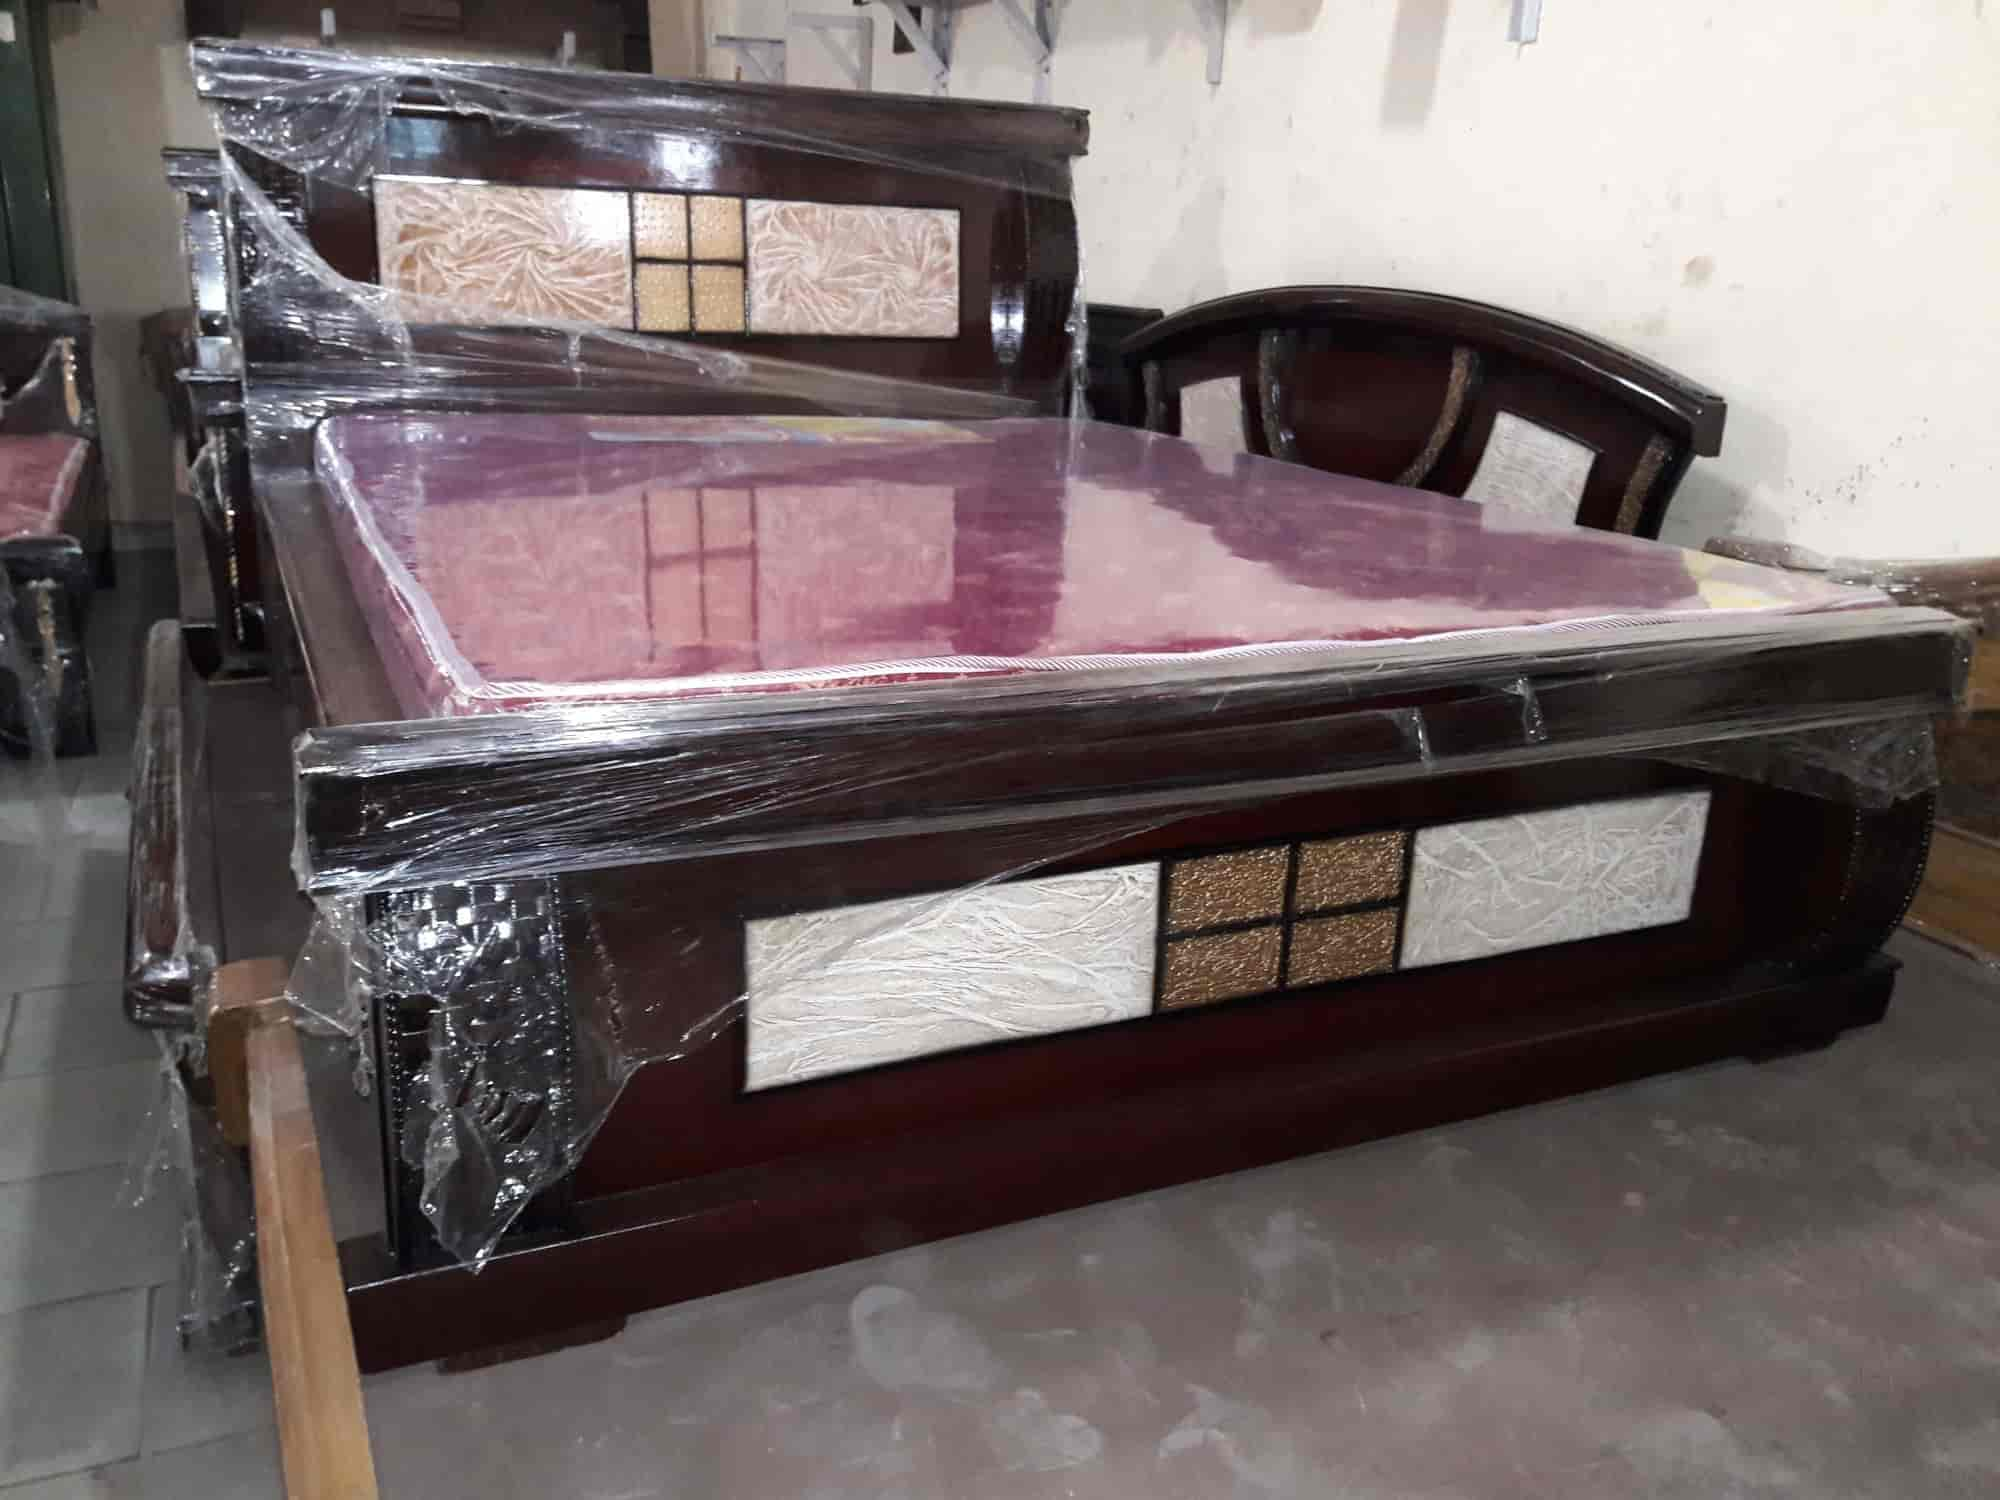 Superieur A To Z Furniture Works, Asif Nagar   Furniture Manufacturers In Hyderabad    Justdial